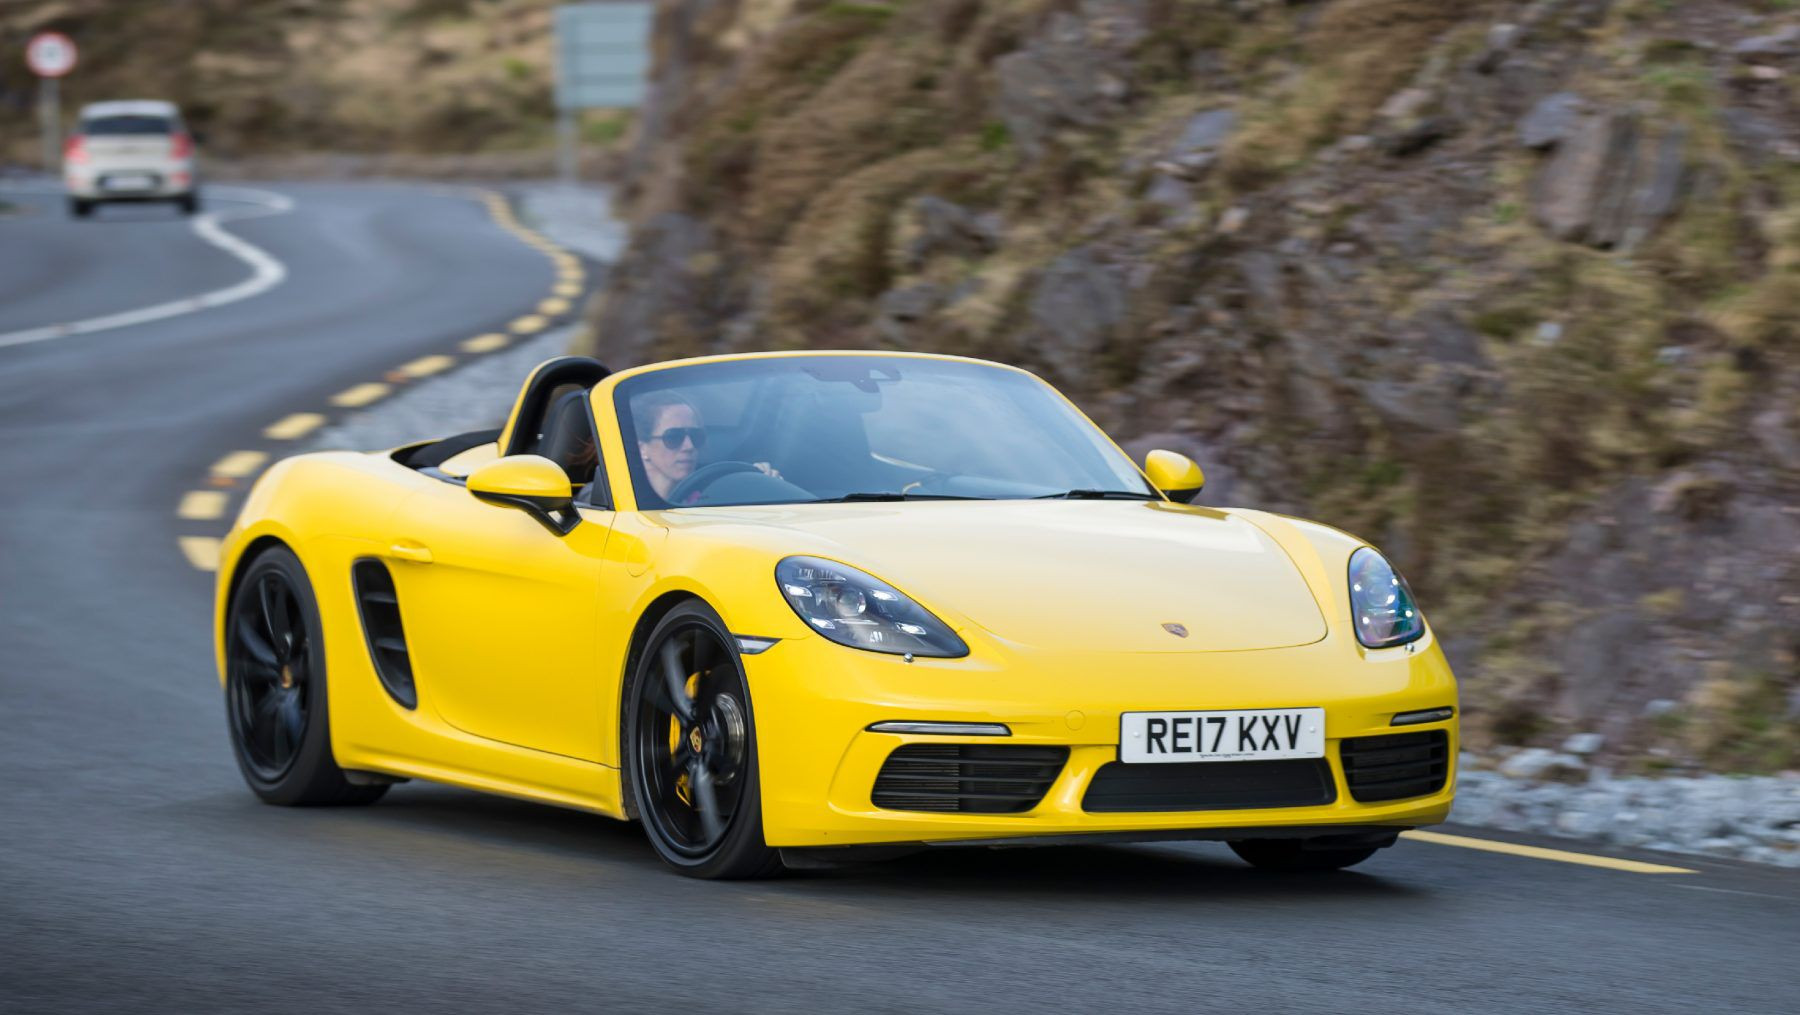 Yellow Porsche 718 Boxster driving on a road